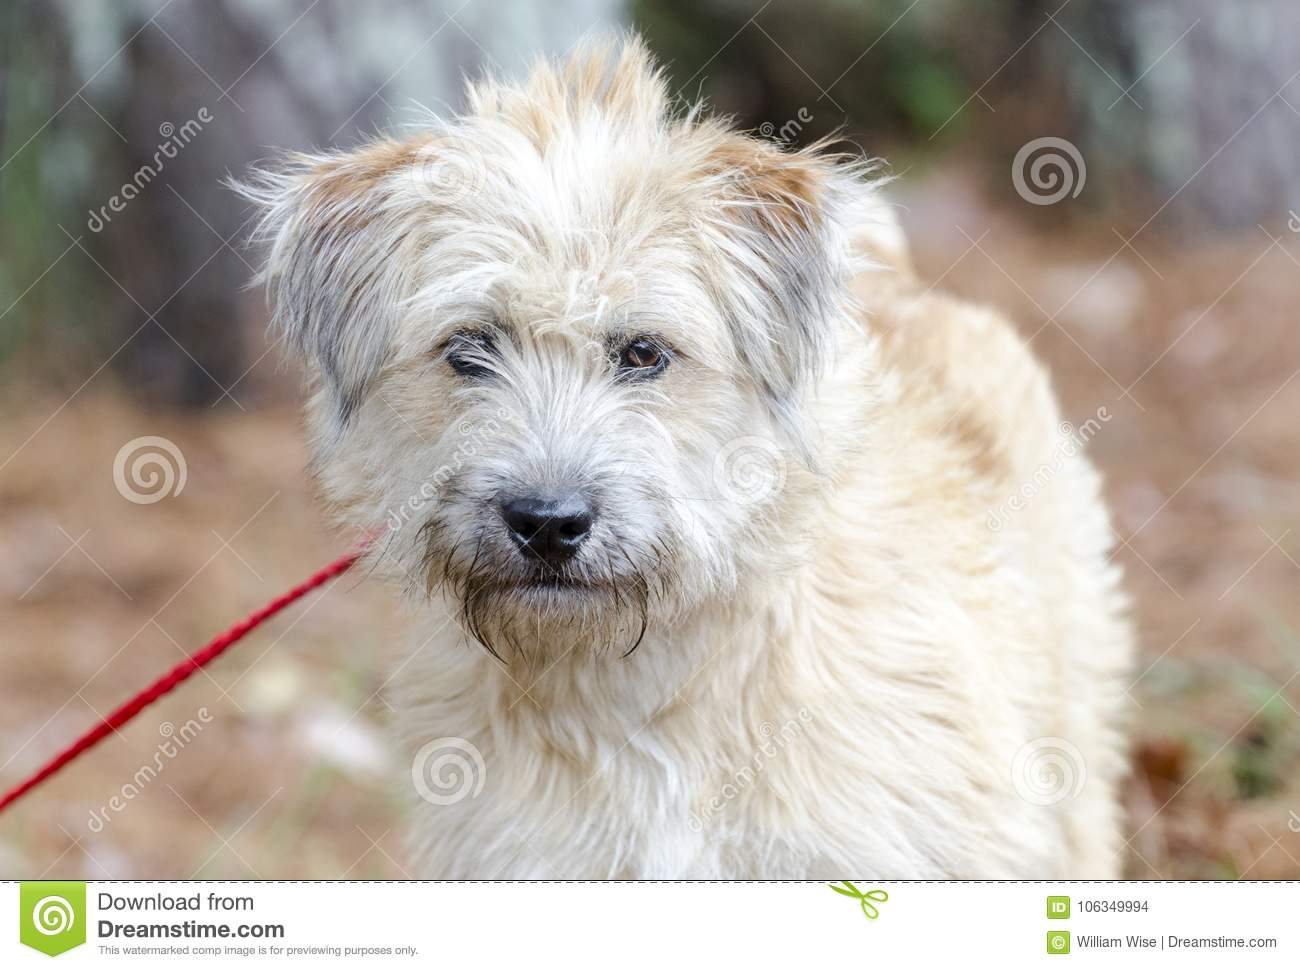 Soft Coated Wheaten Terrier Mixed Breed Dog Stock Photo Image Of Adoptions Scruffy 106349994